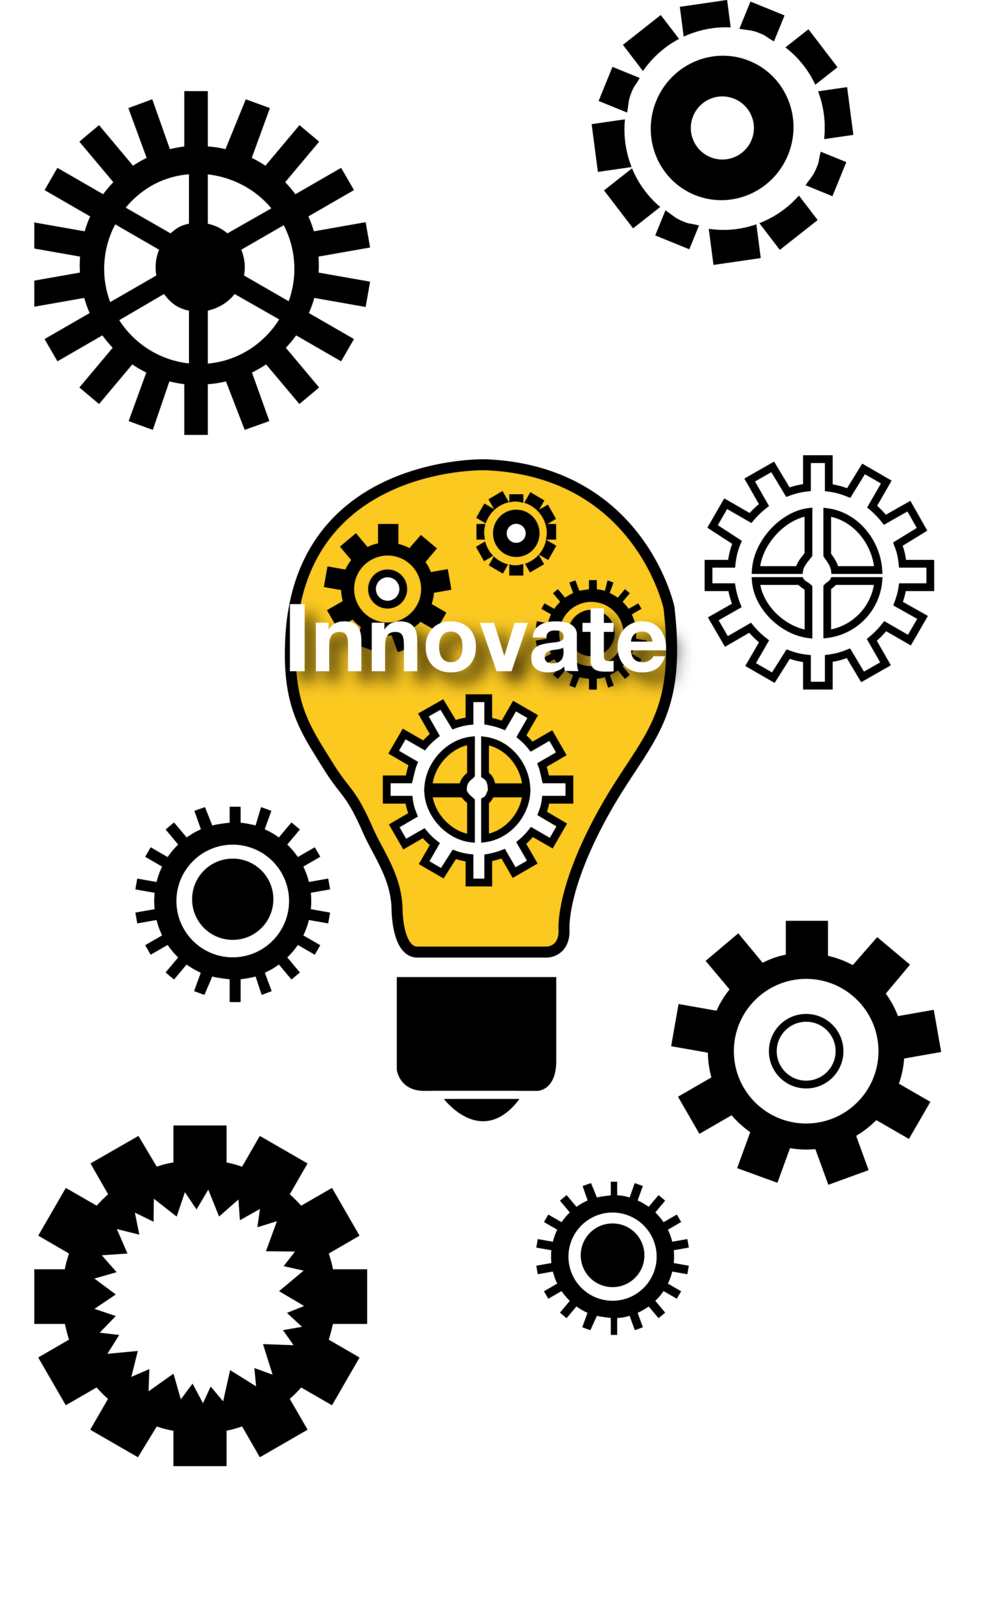 InnovateS.png